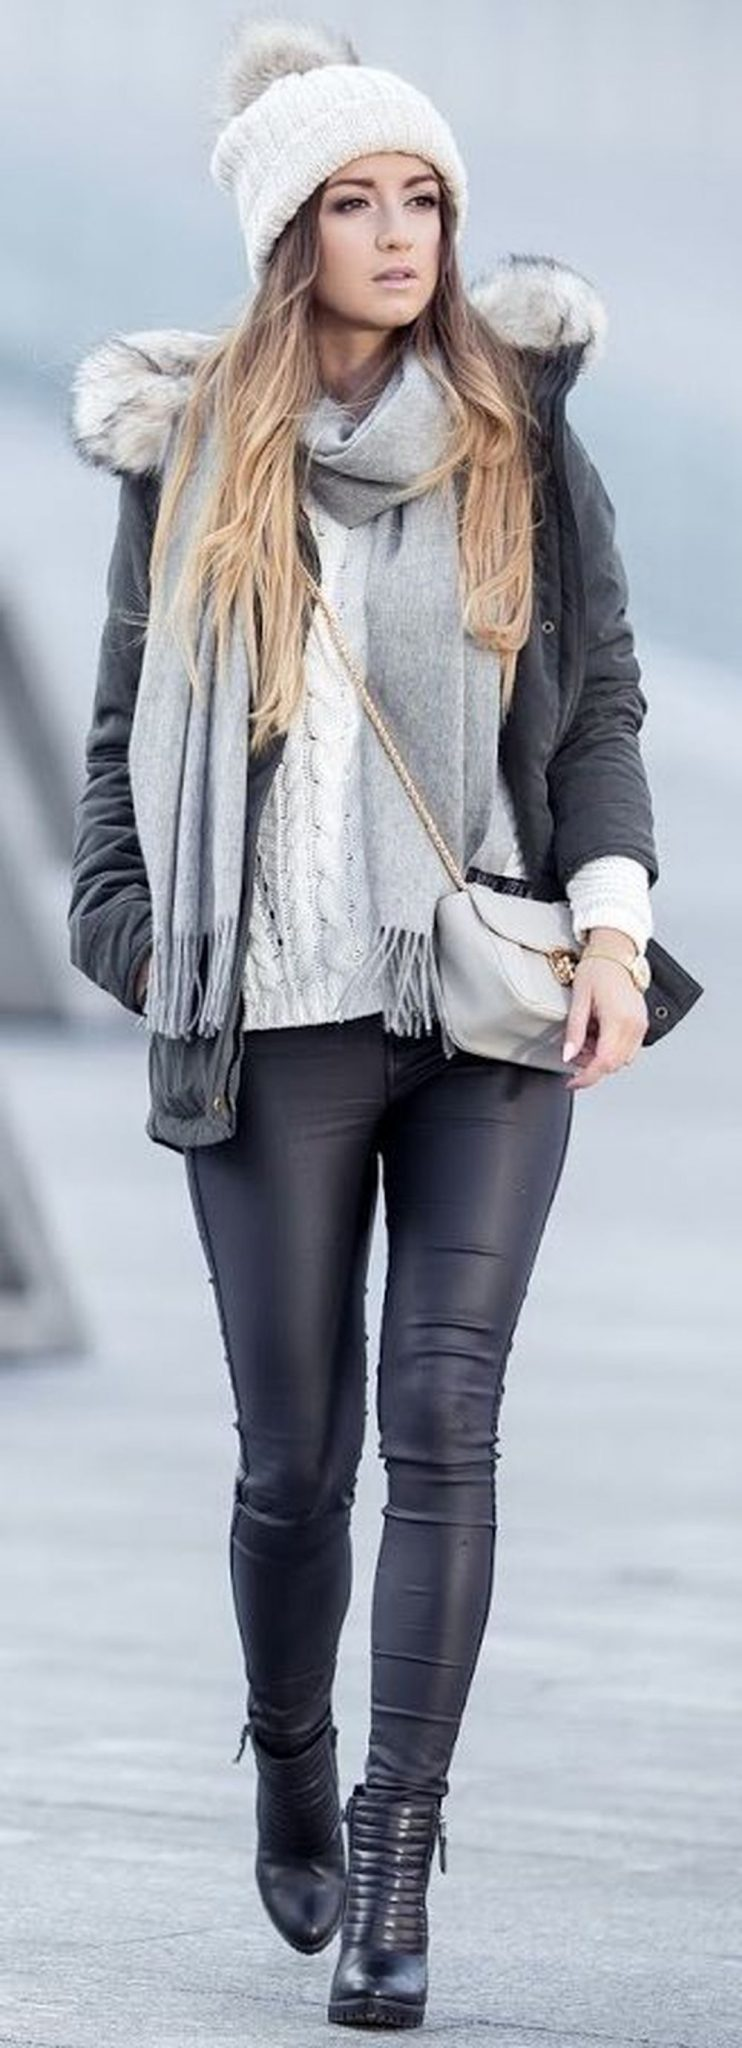 Fashionable scarves for winter outfits 20